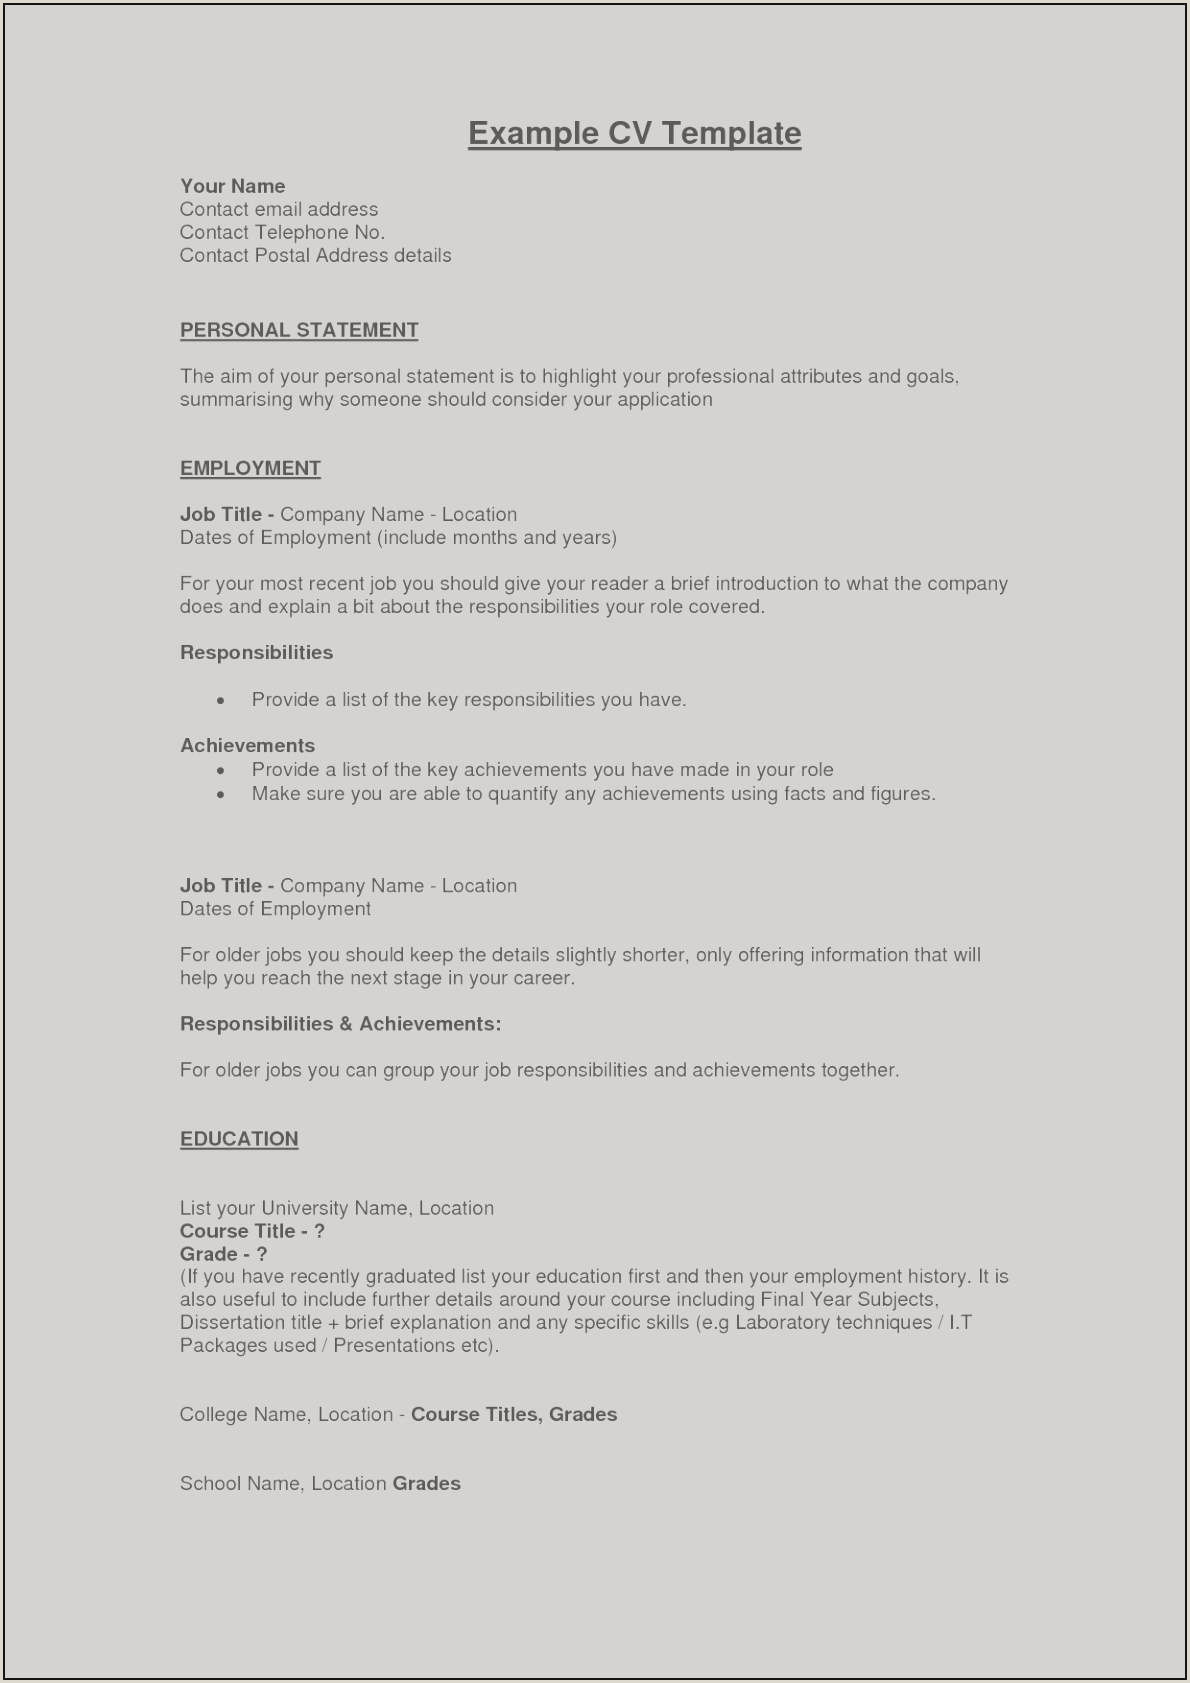 Resume format for First Job Luxury Examples Resumes for First Job